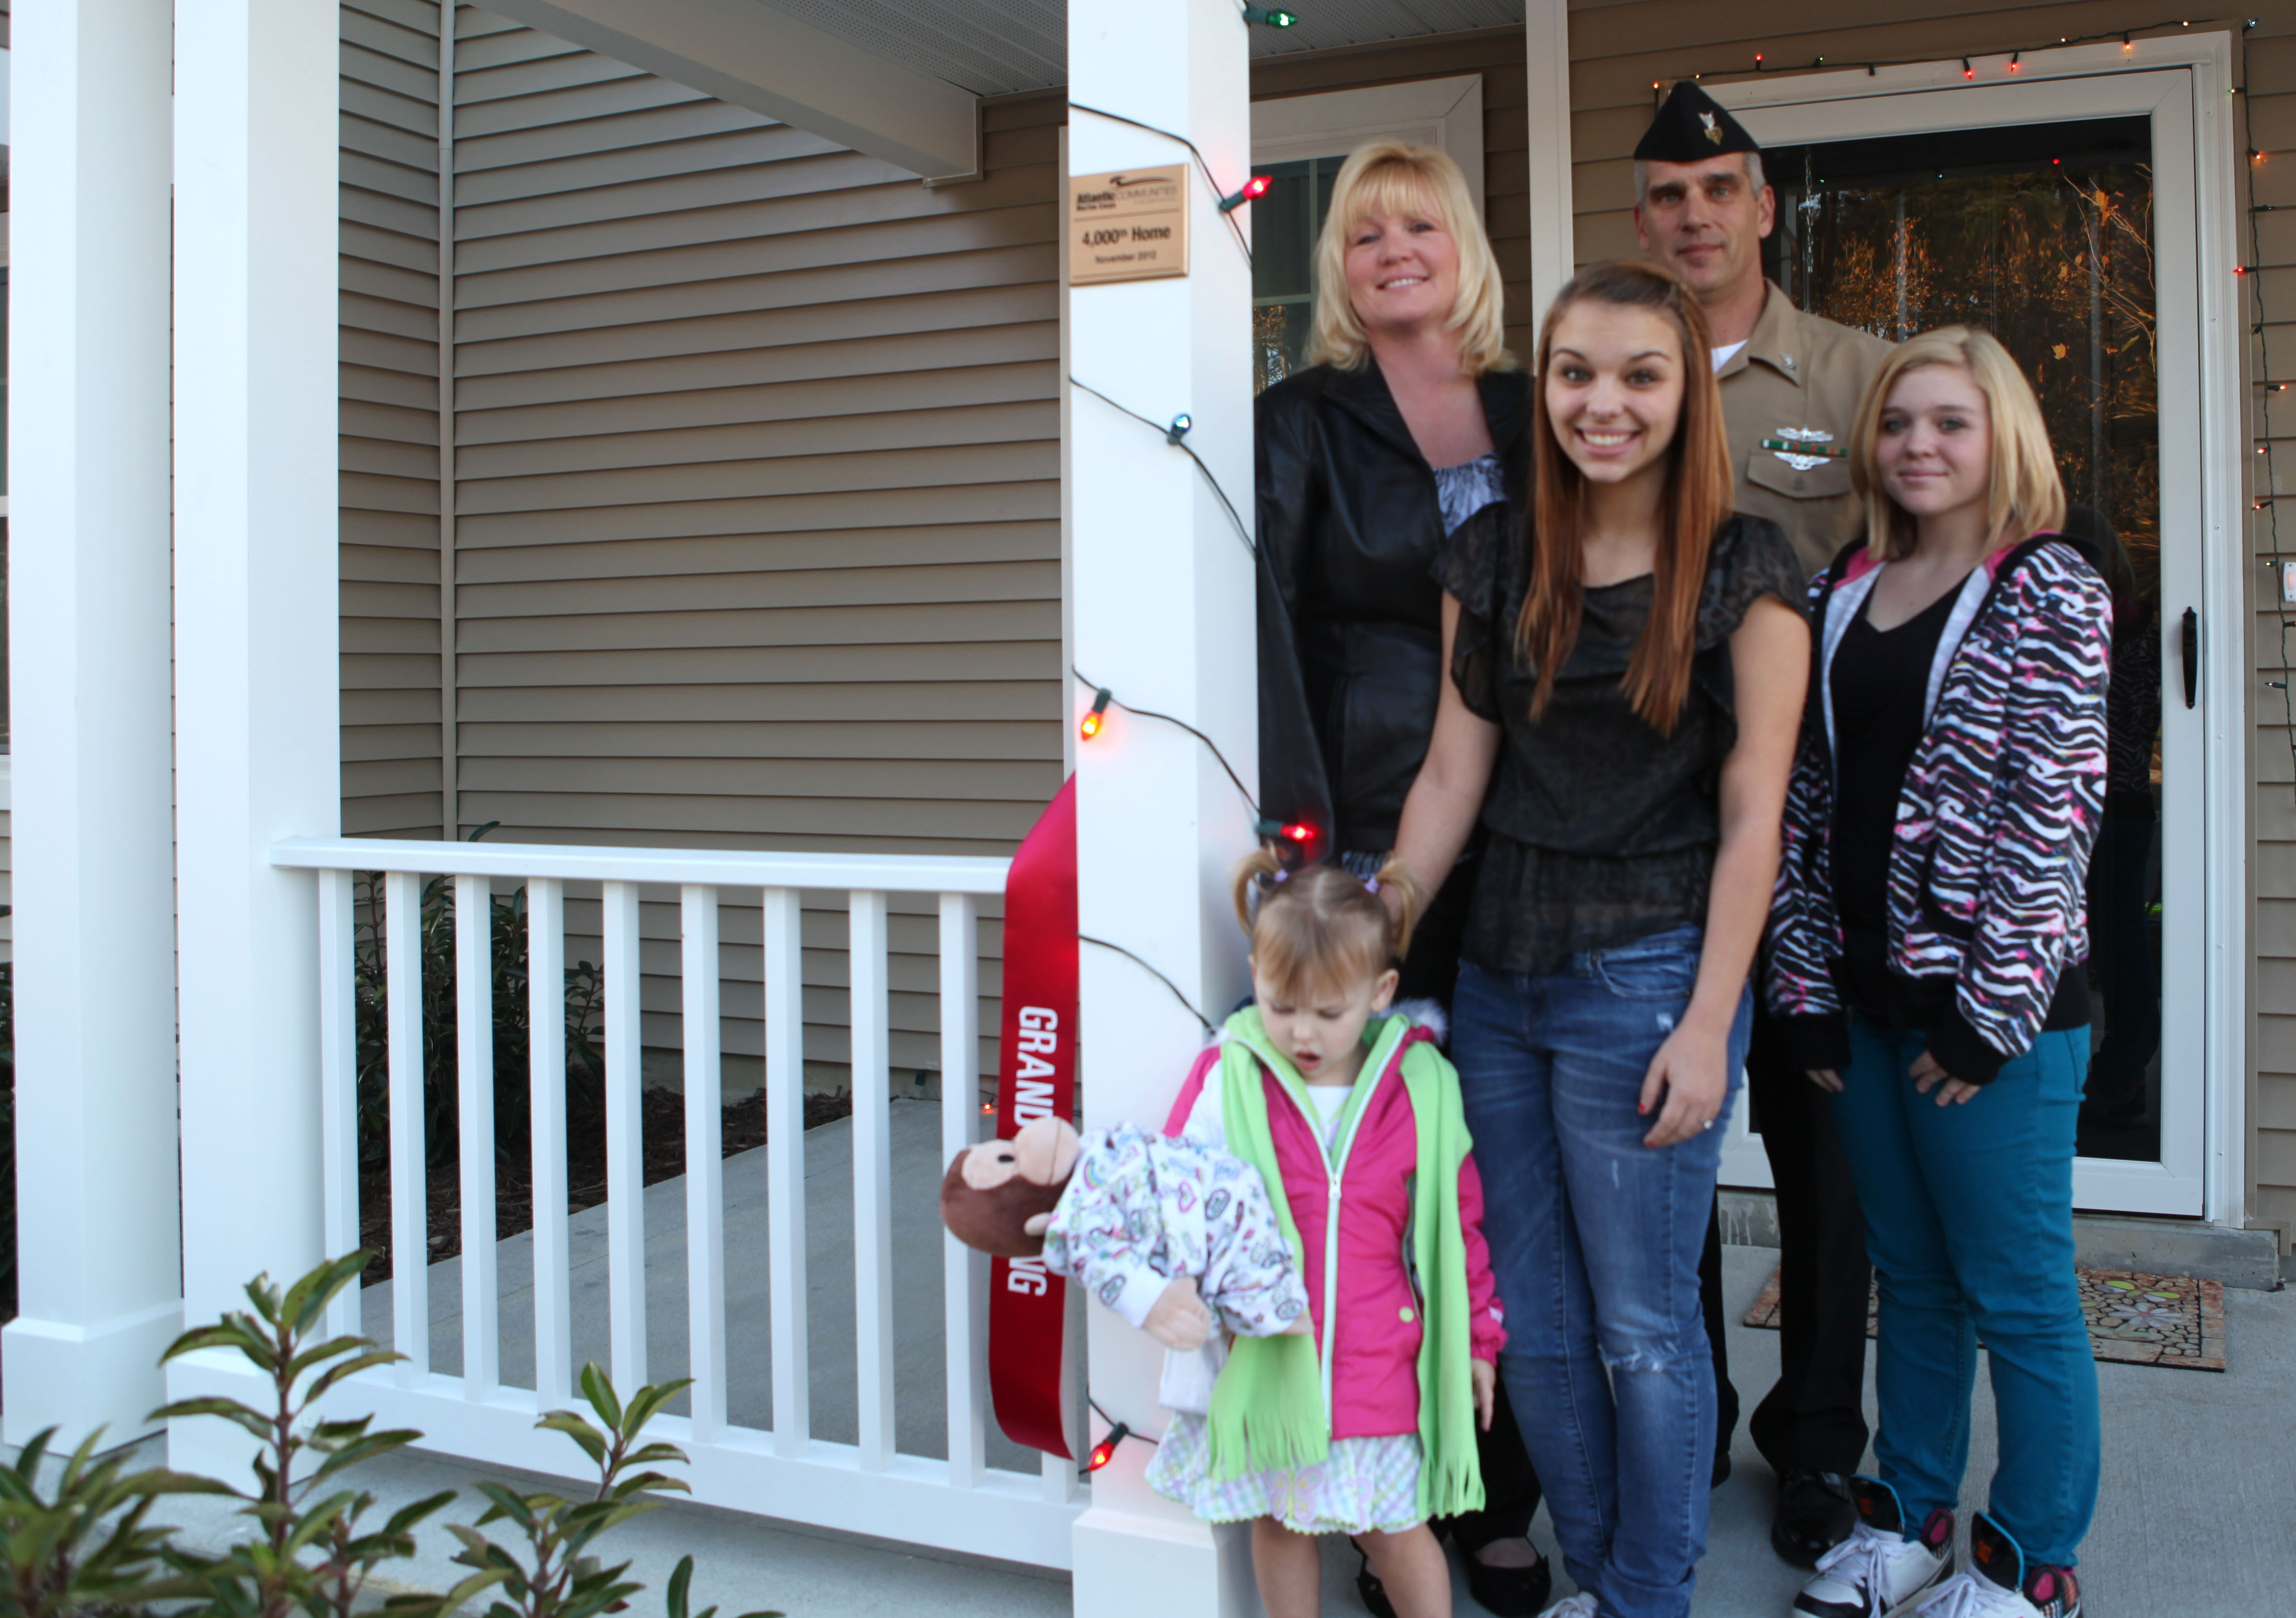 Camp lejeune base housing and amcc nov 29 their new home is in the